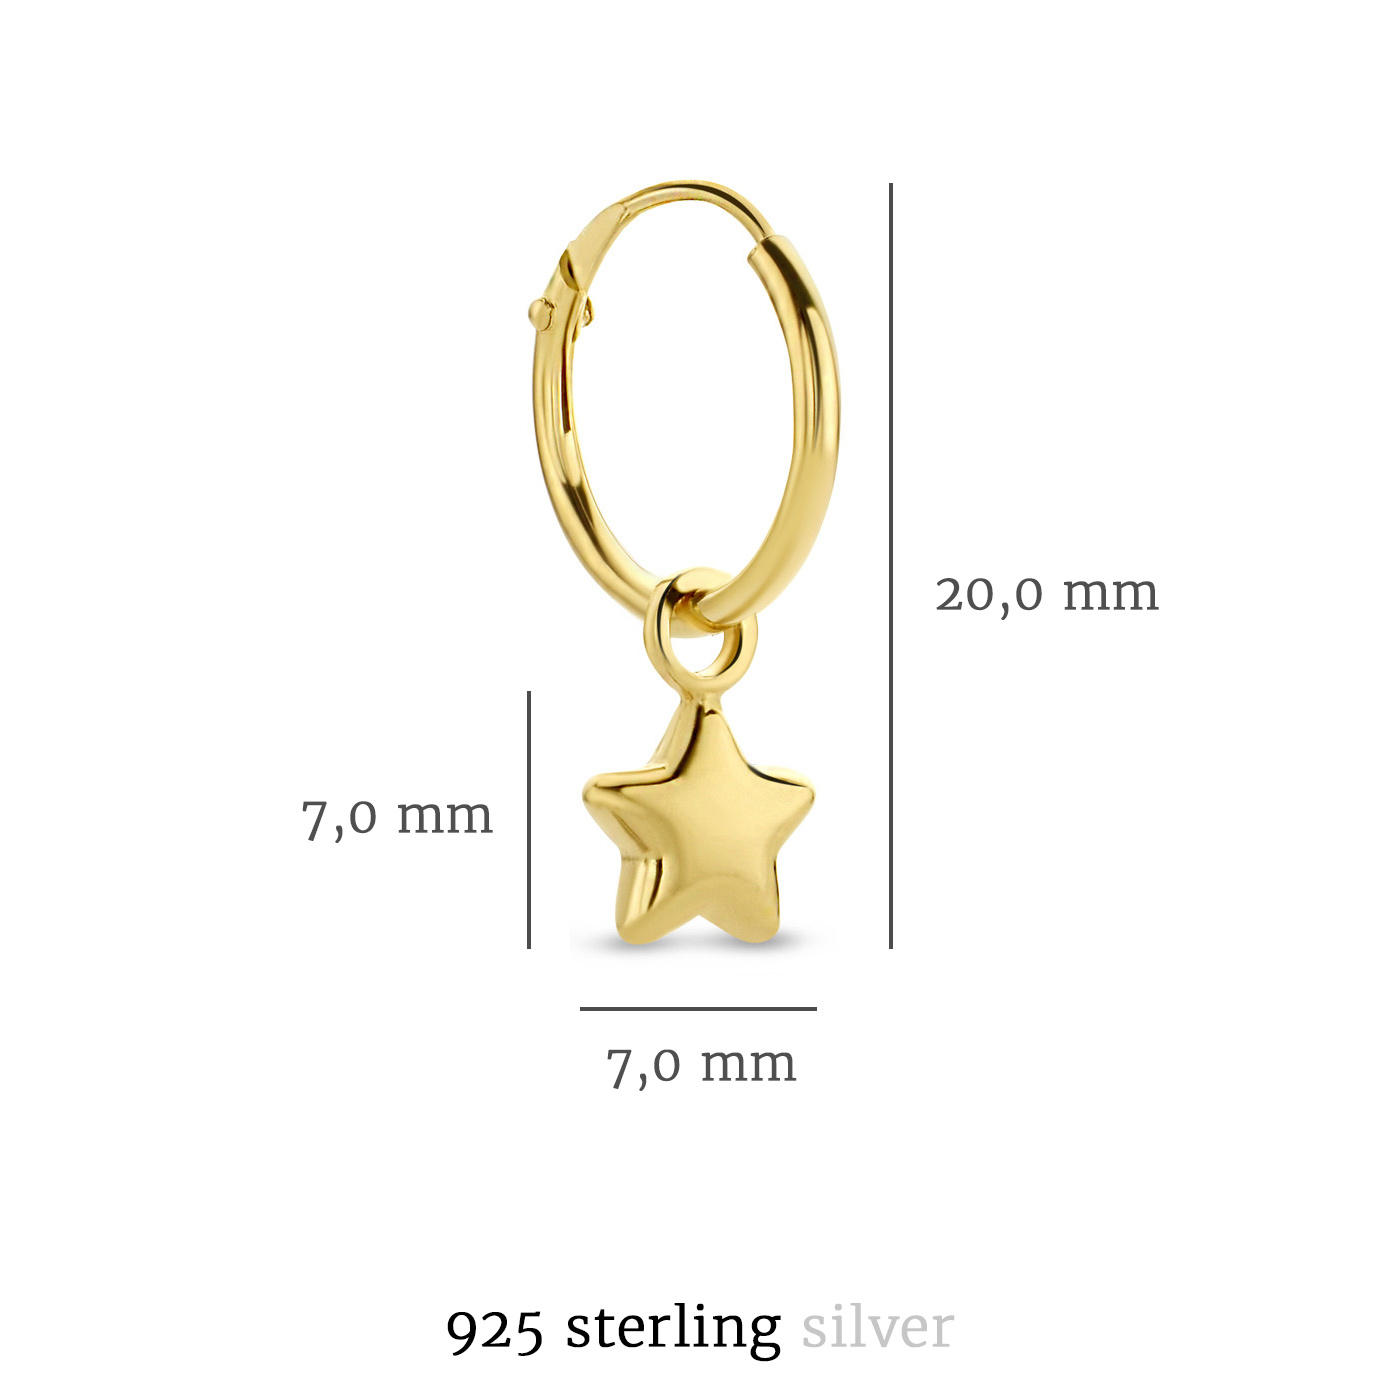 Selected Jewels Julie Esthée creole color oro in argento sterling 925